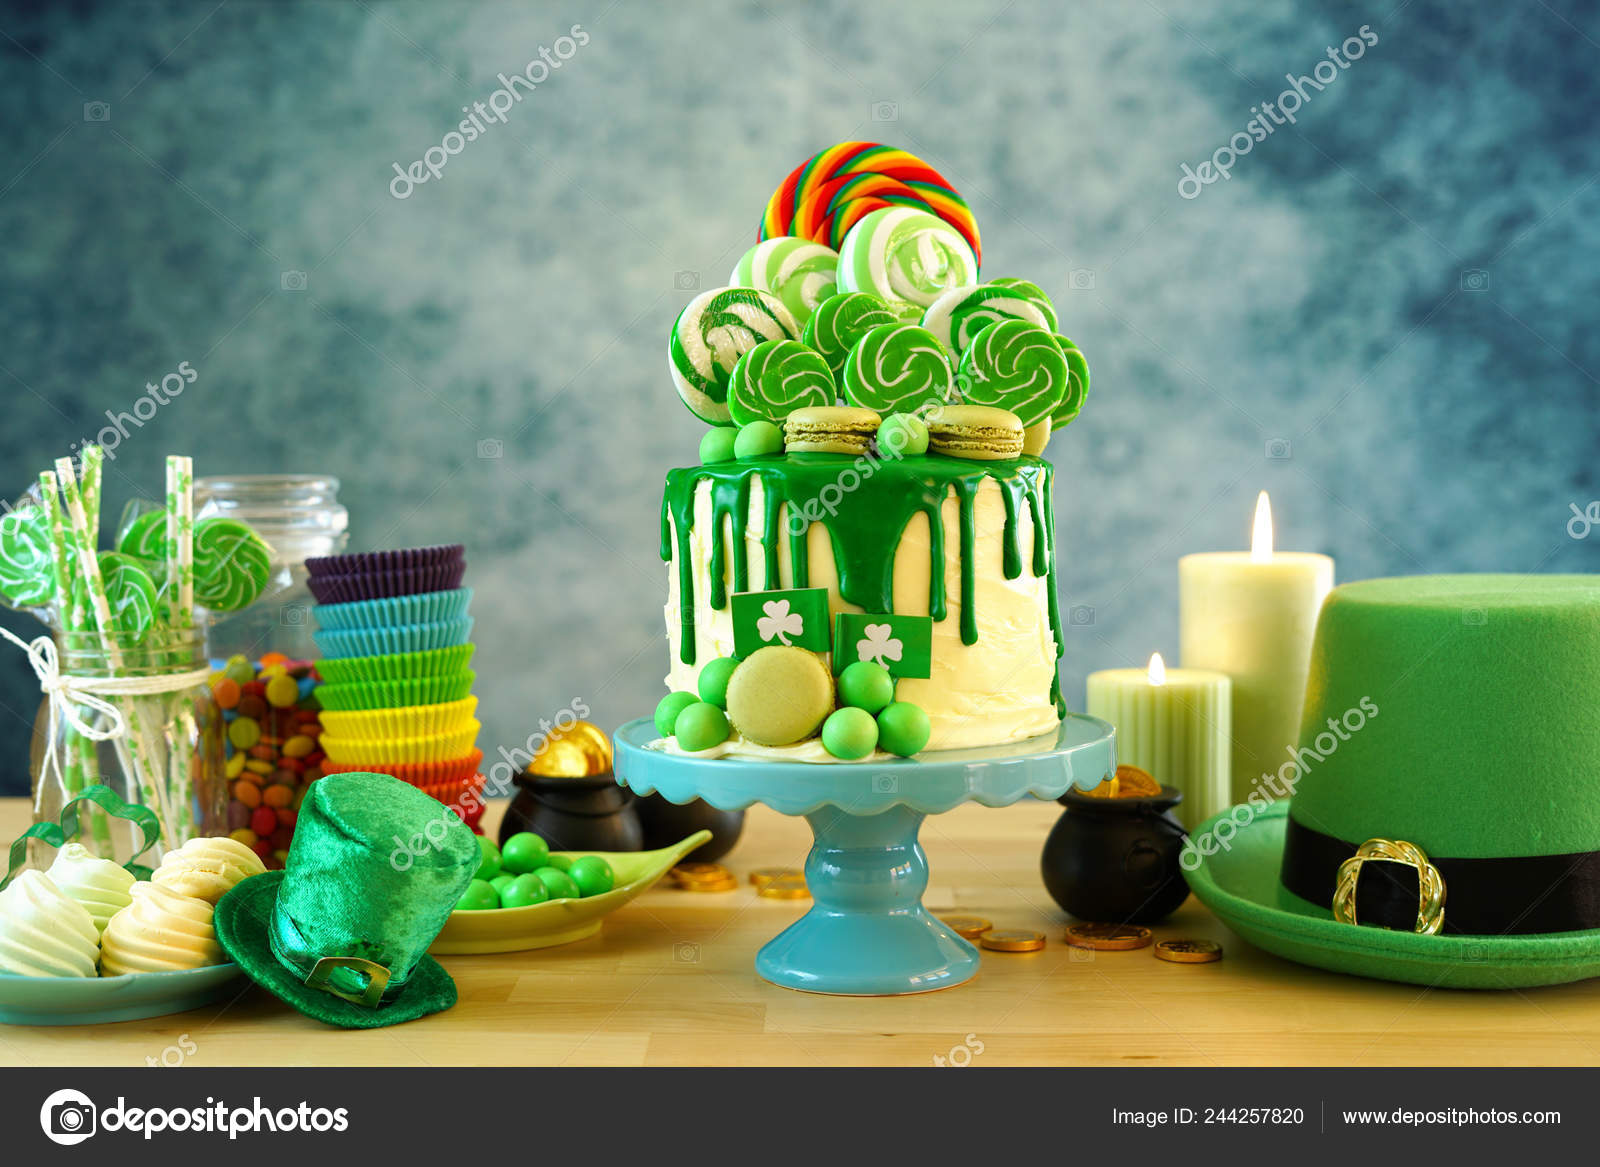 Sensational St Patricks Day Candyland Drip Cake And Party Table Stock Photo Funny Birthday Cards Online Necthendildamsfinfo